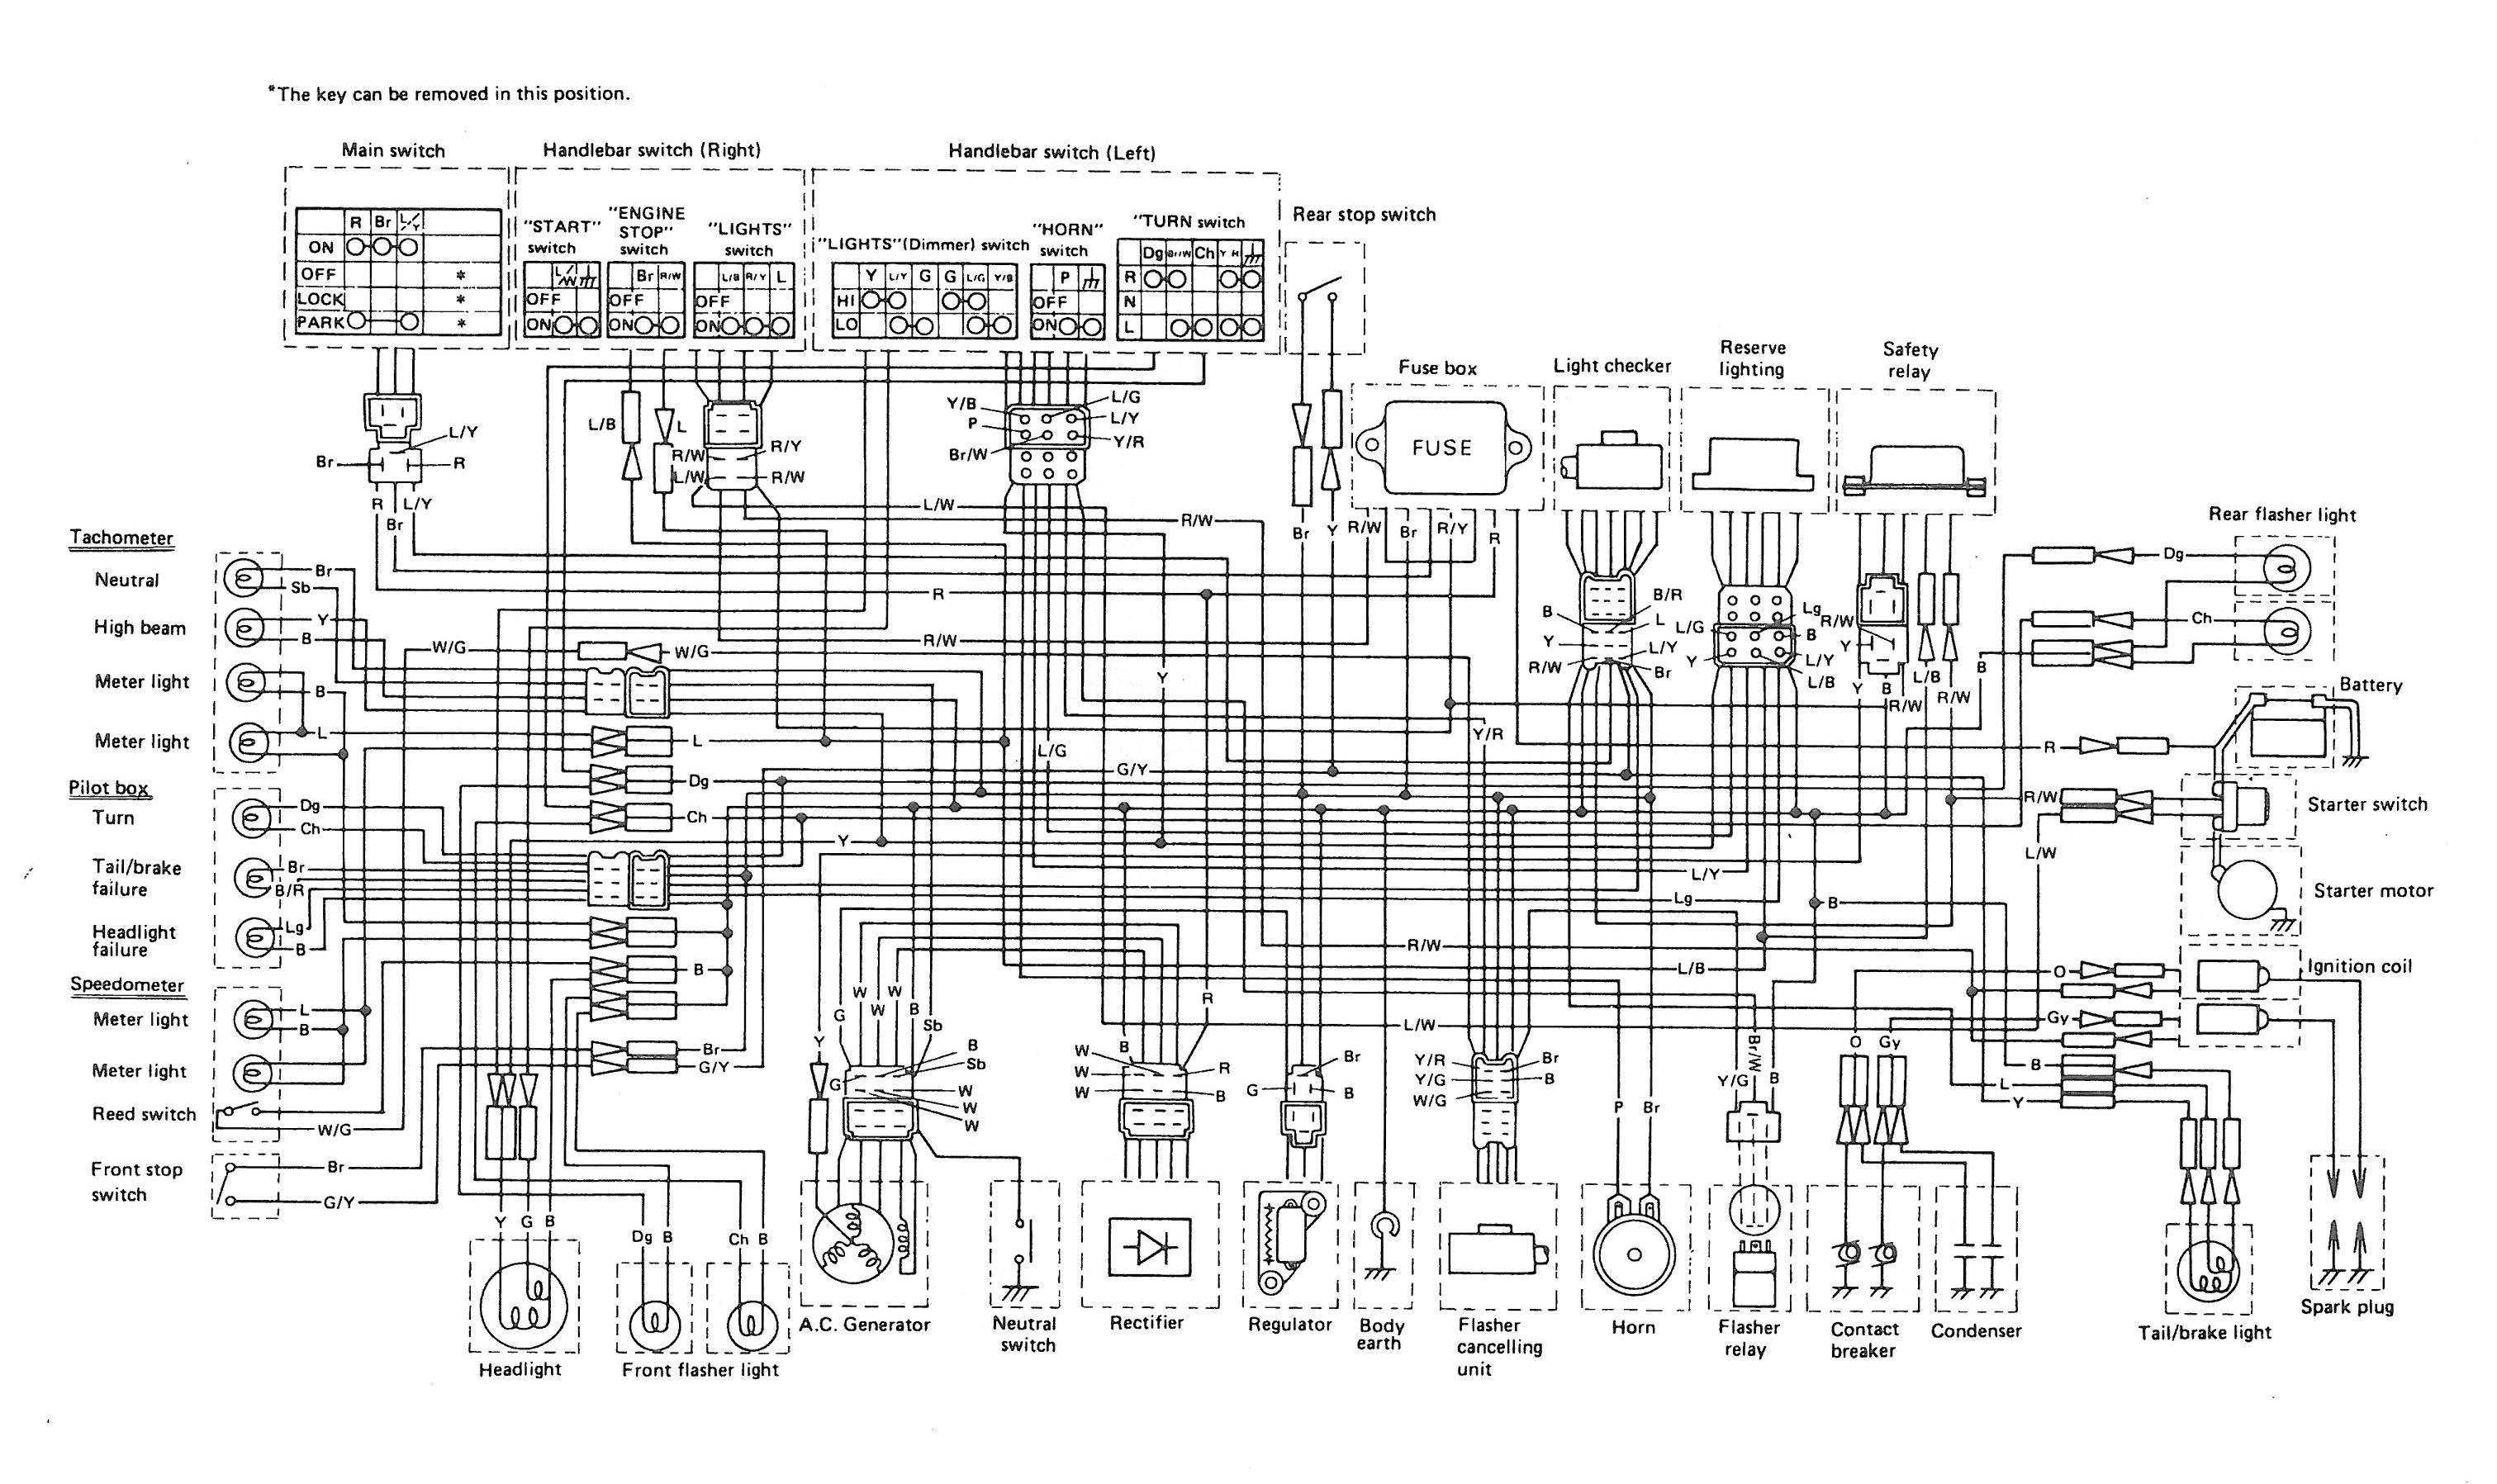 78 xsse wiring 6 1 1978 thexscafe yamaha xs 400 wiring diagram at n-0.co